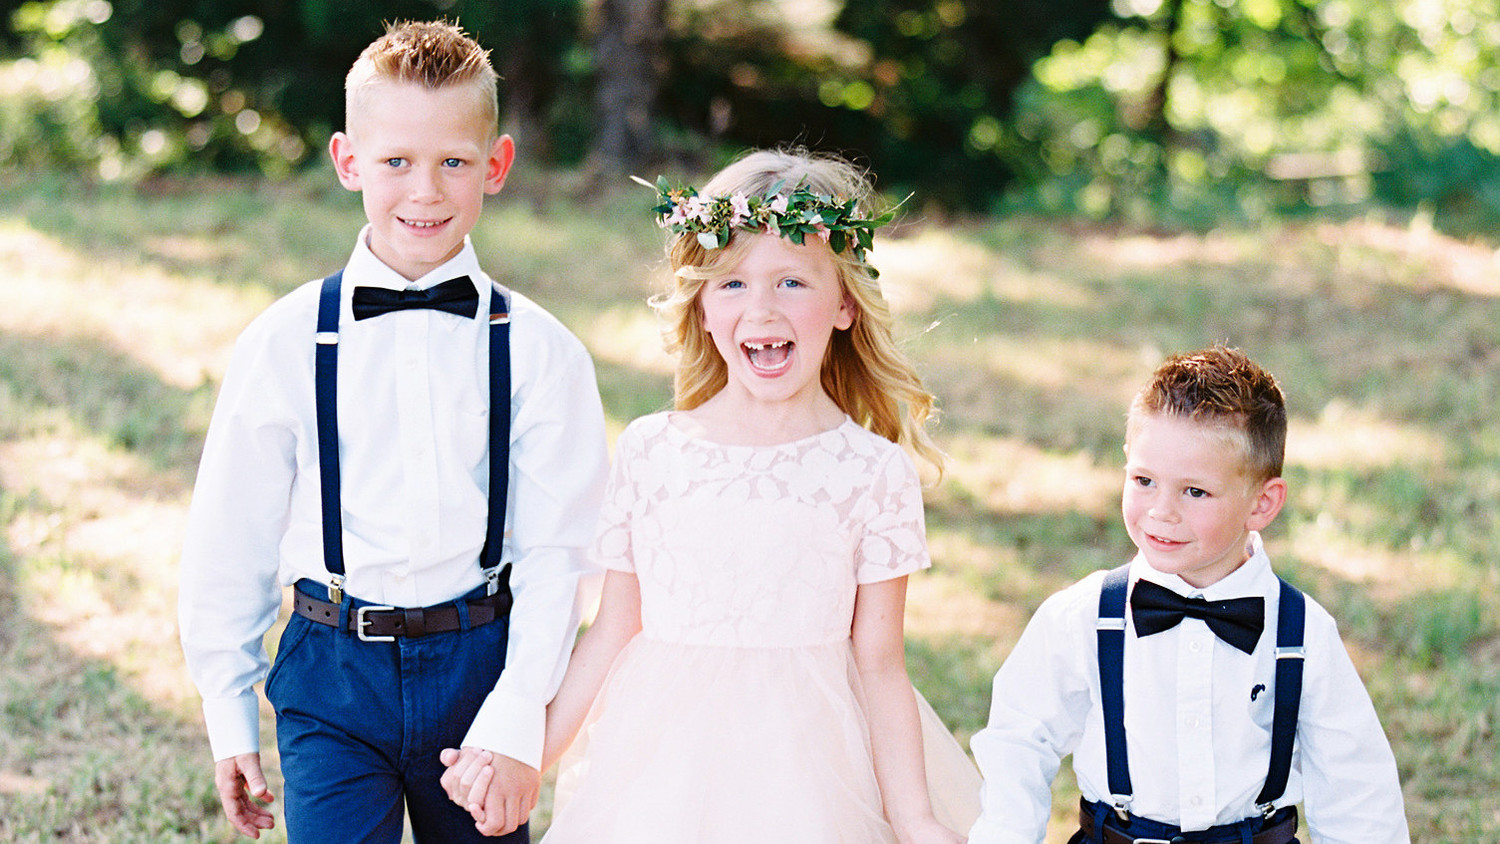 keisha-luke-wedding-kids-236-6259934-0117_horiz